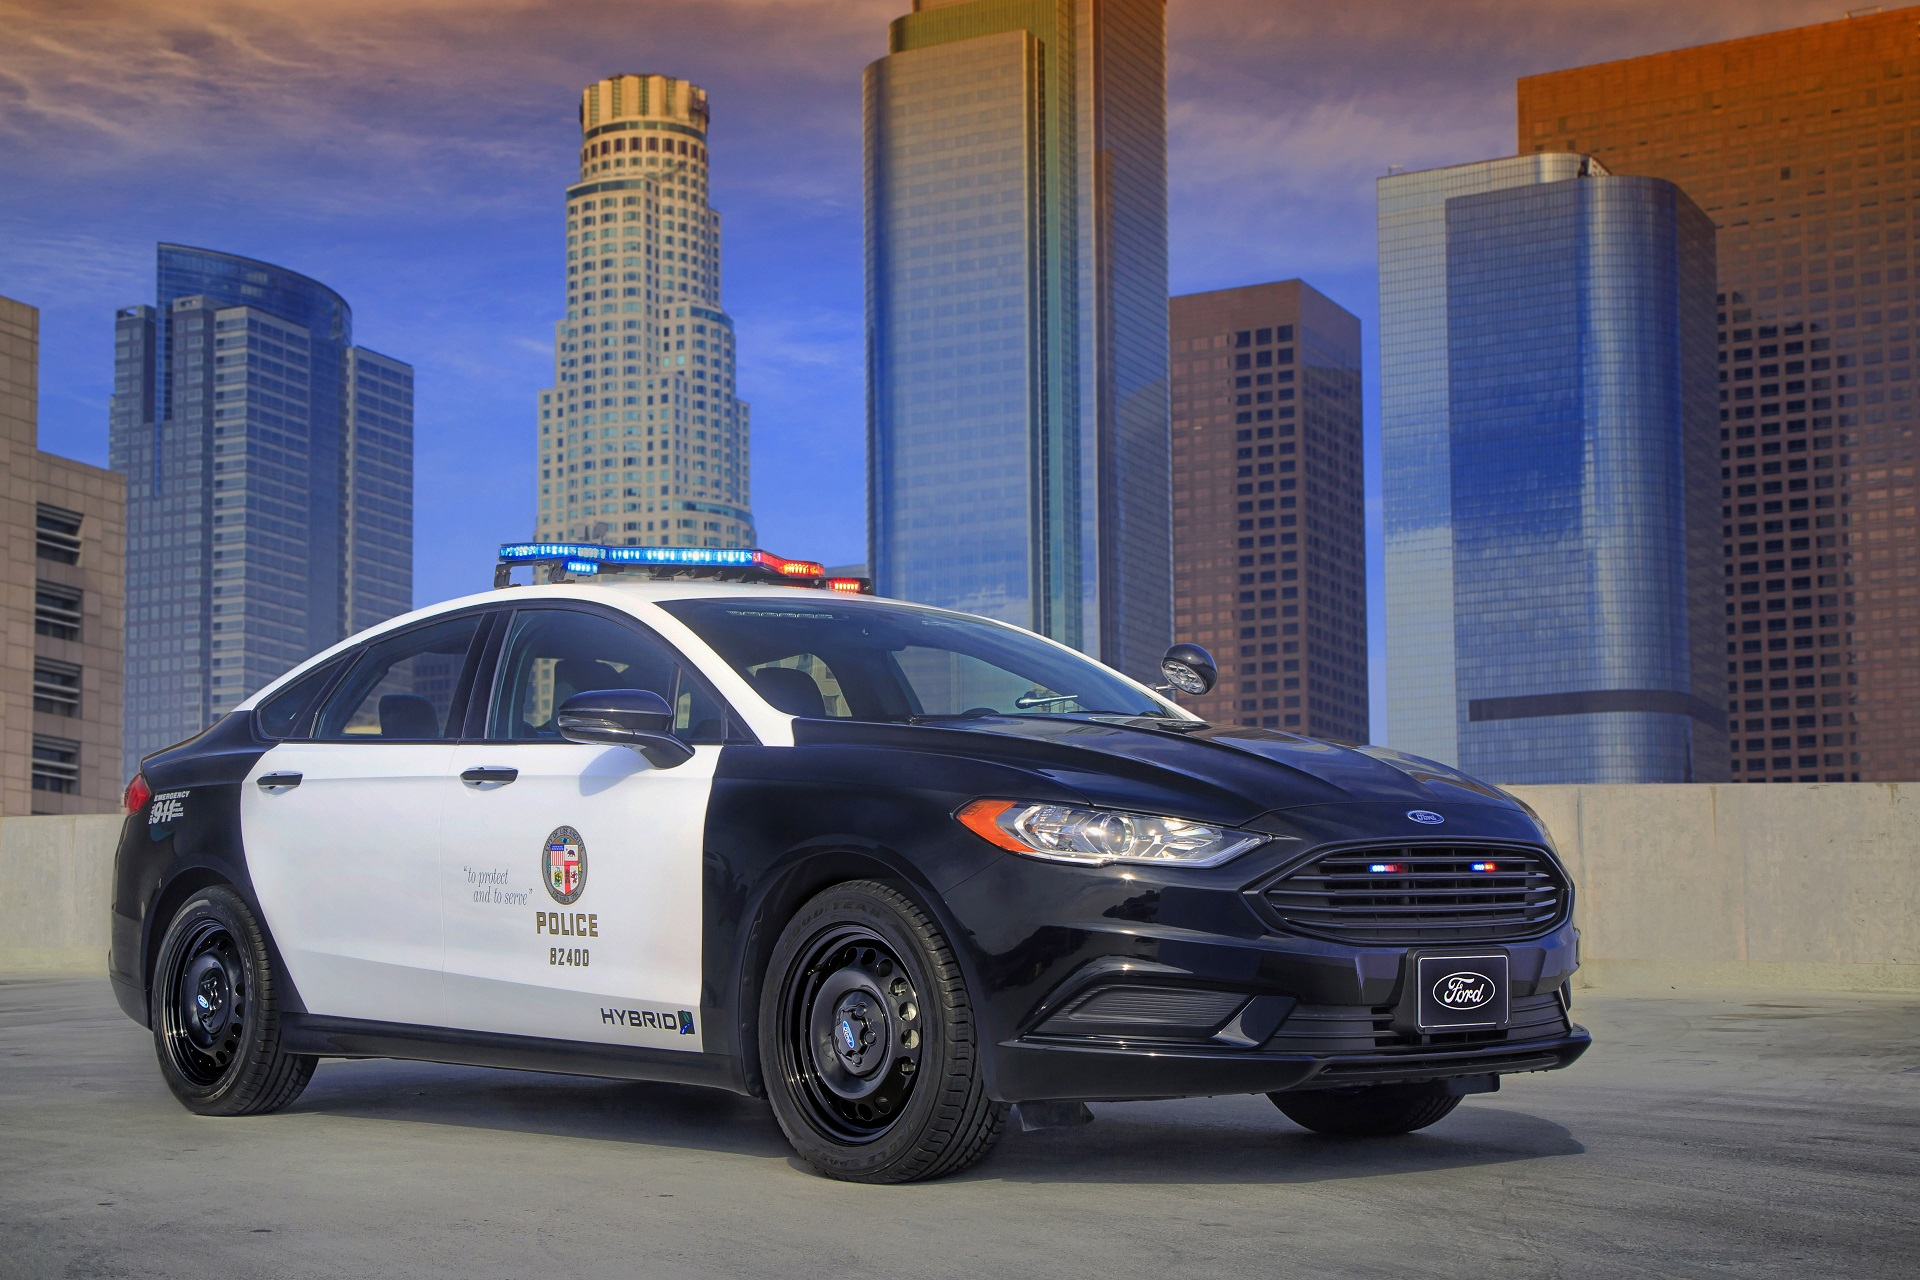 2018-ford-police-responder-hybrid-sedan-pursuit-rated-police-car_100598796_h